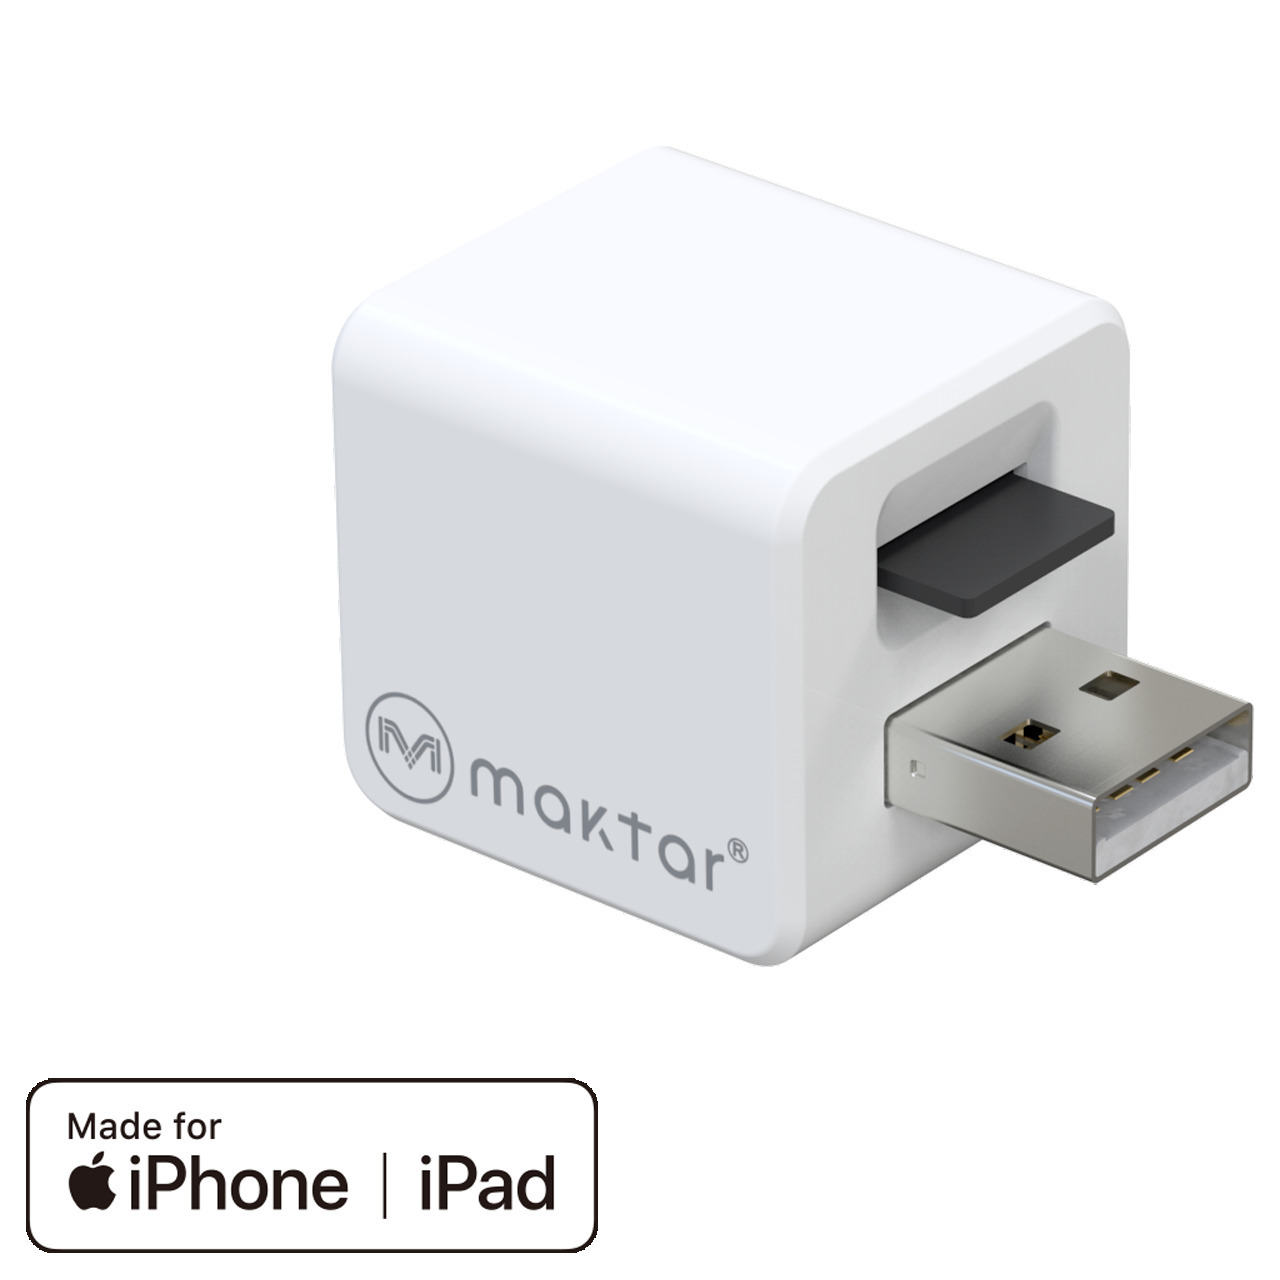 Maktar Auto-Back-up-Adapter Qubii- für iPhone-iPad- speichert Bilder-Videos-Kontakte auf microSD